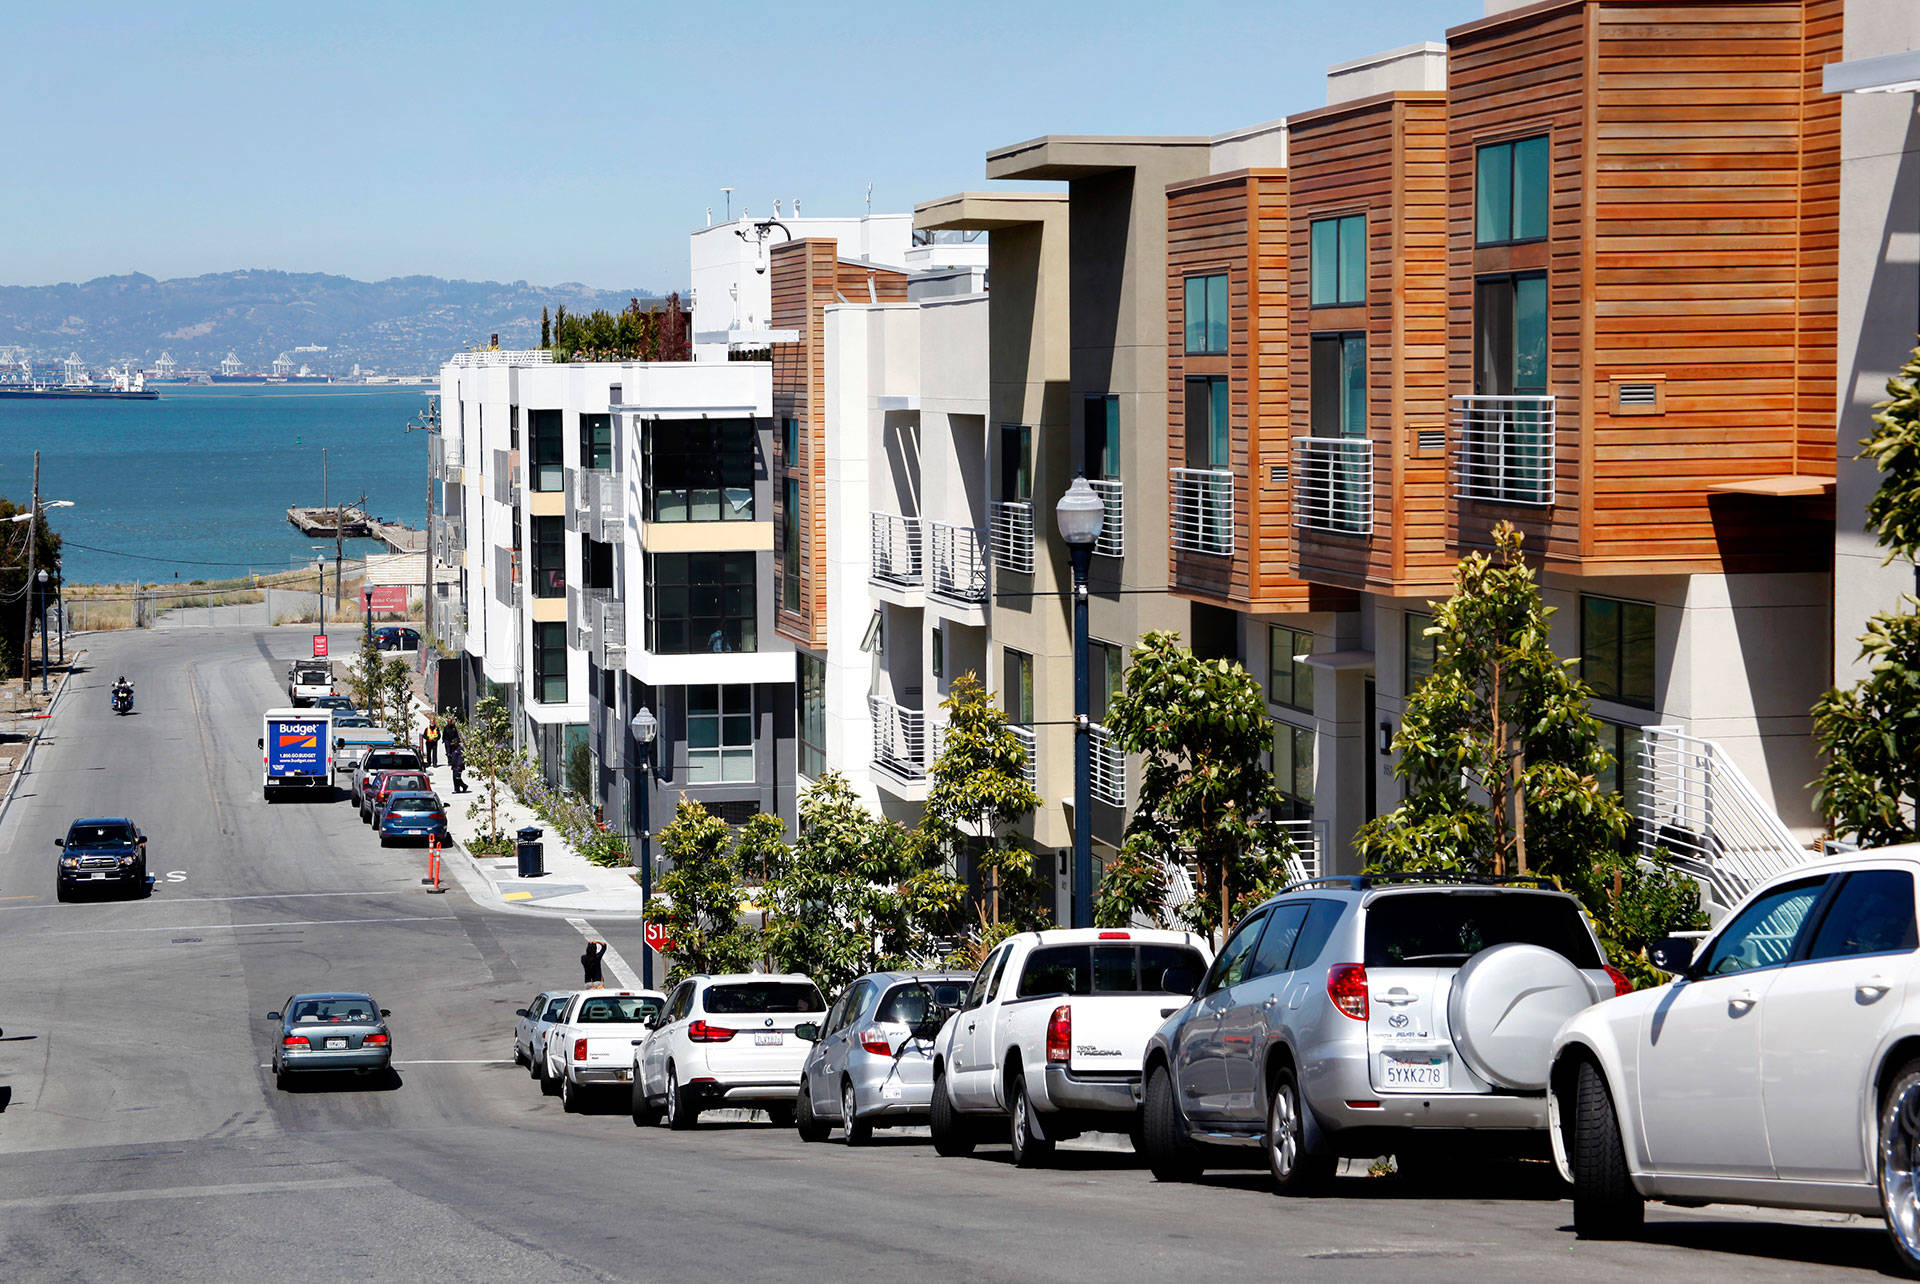 Several finished apartment buildings in Lennar's San Francisco Shipyard development look out over the bay in Hunters Point. Brittany Hosea-Small/KQED